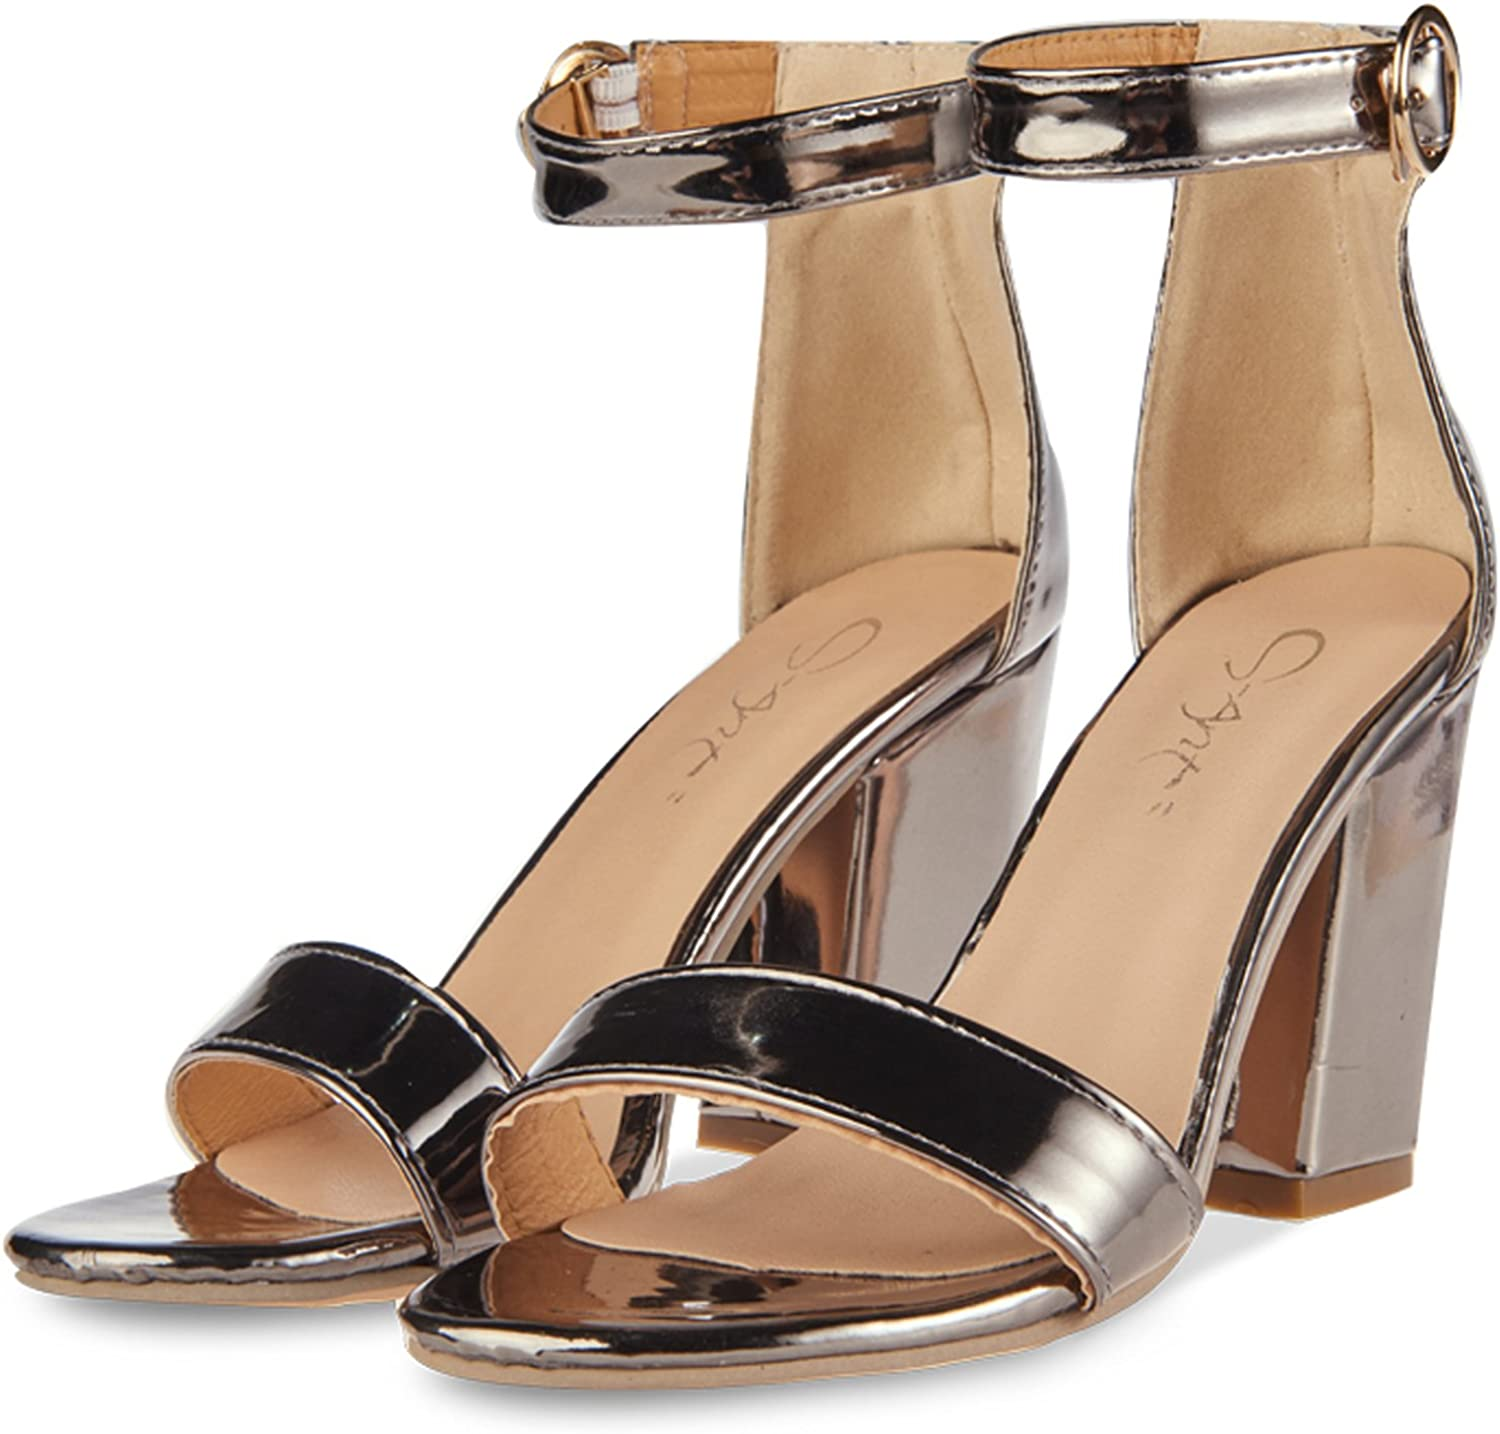 JSUN7 Women's Chunky High Heel Sandals Block Ankle Strap with Buckle Sandal Stiletto Heels Fashion Party shoes for Women